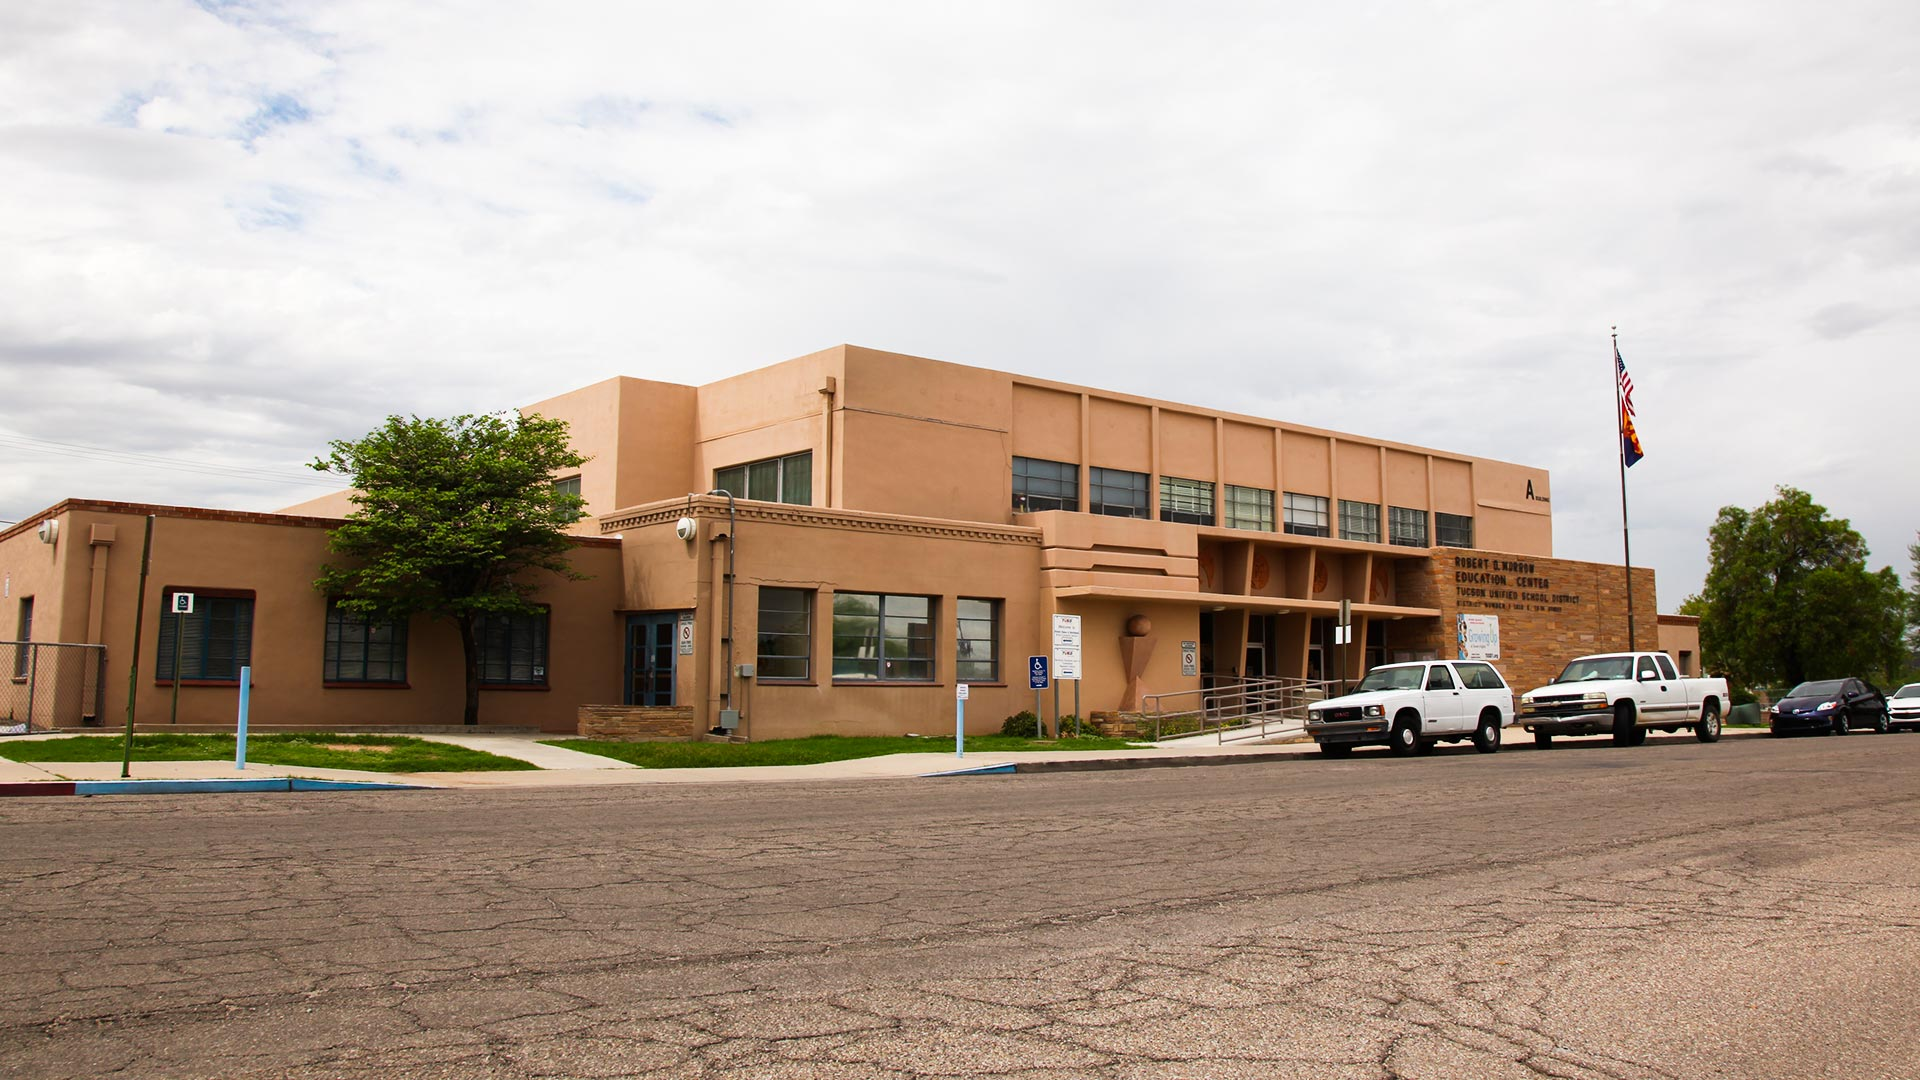 The Tucson Unified School District office, 1010 E. 10th St., Tucson.